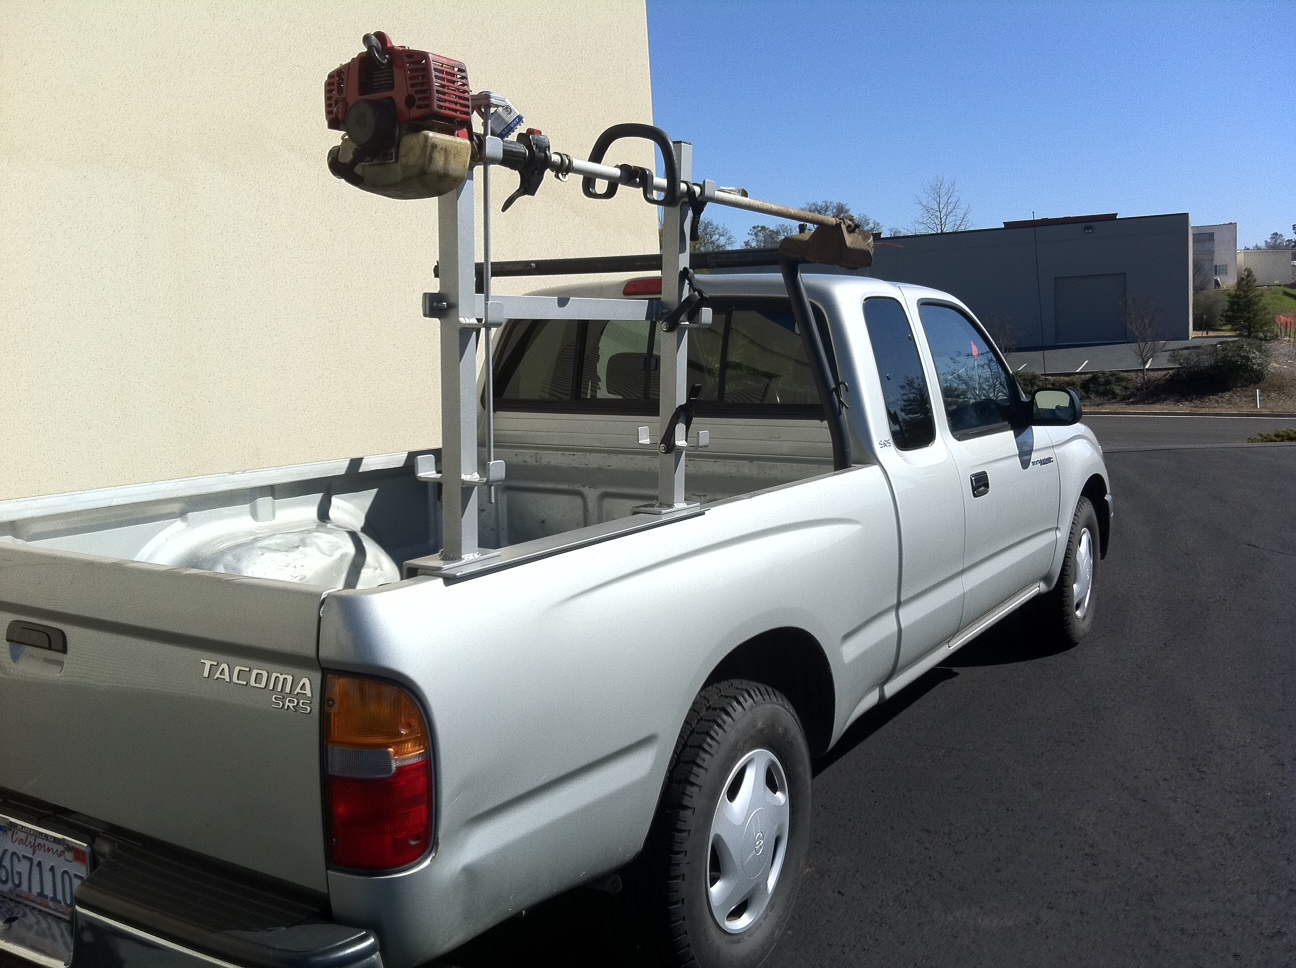 Rack-it Truck Racks: Custom Trimmer Rack Is A Handy Helper